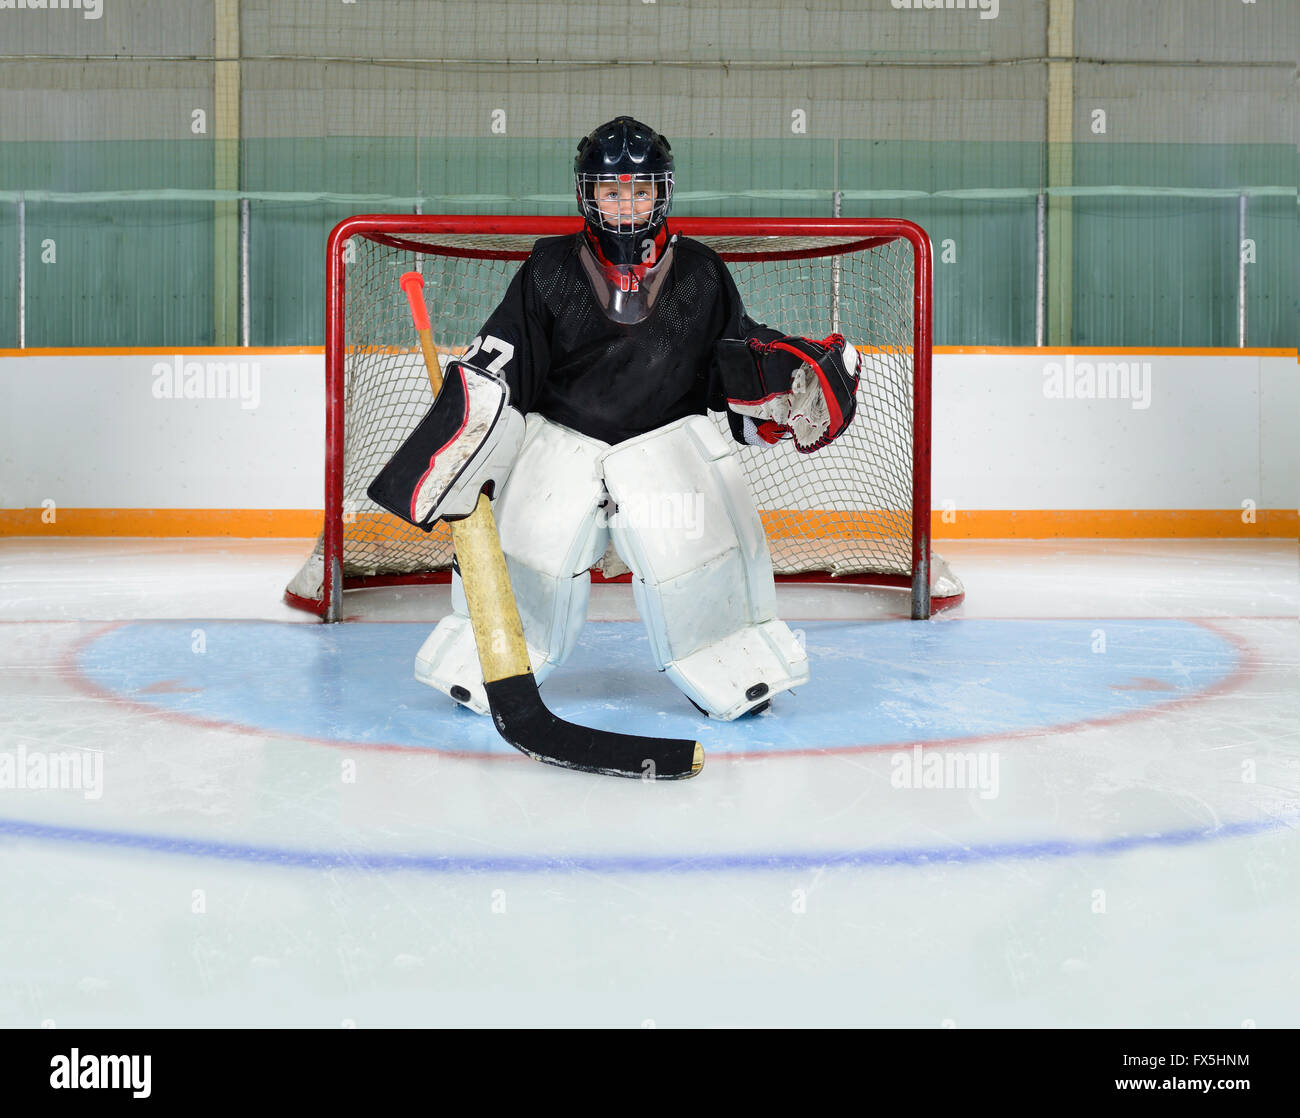 A Young Hockey Goalie Kid Protects his Net from a Goal.  Photographed in the crease of a hockey arena with freshly - Stock Image